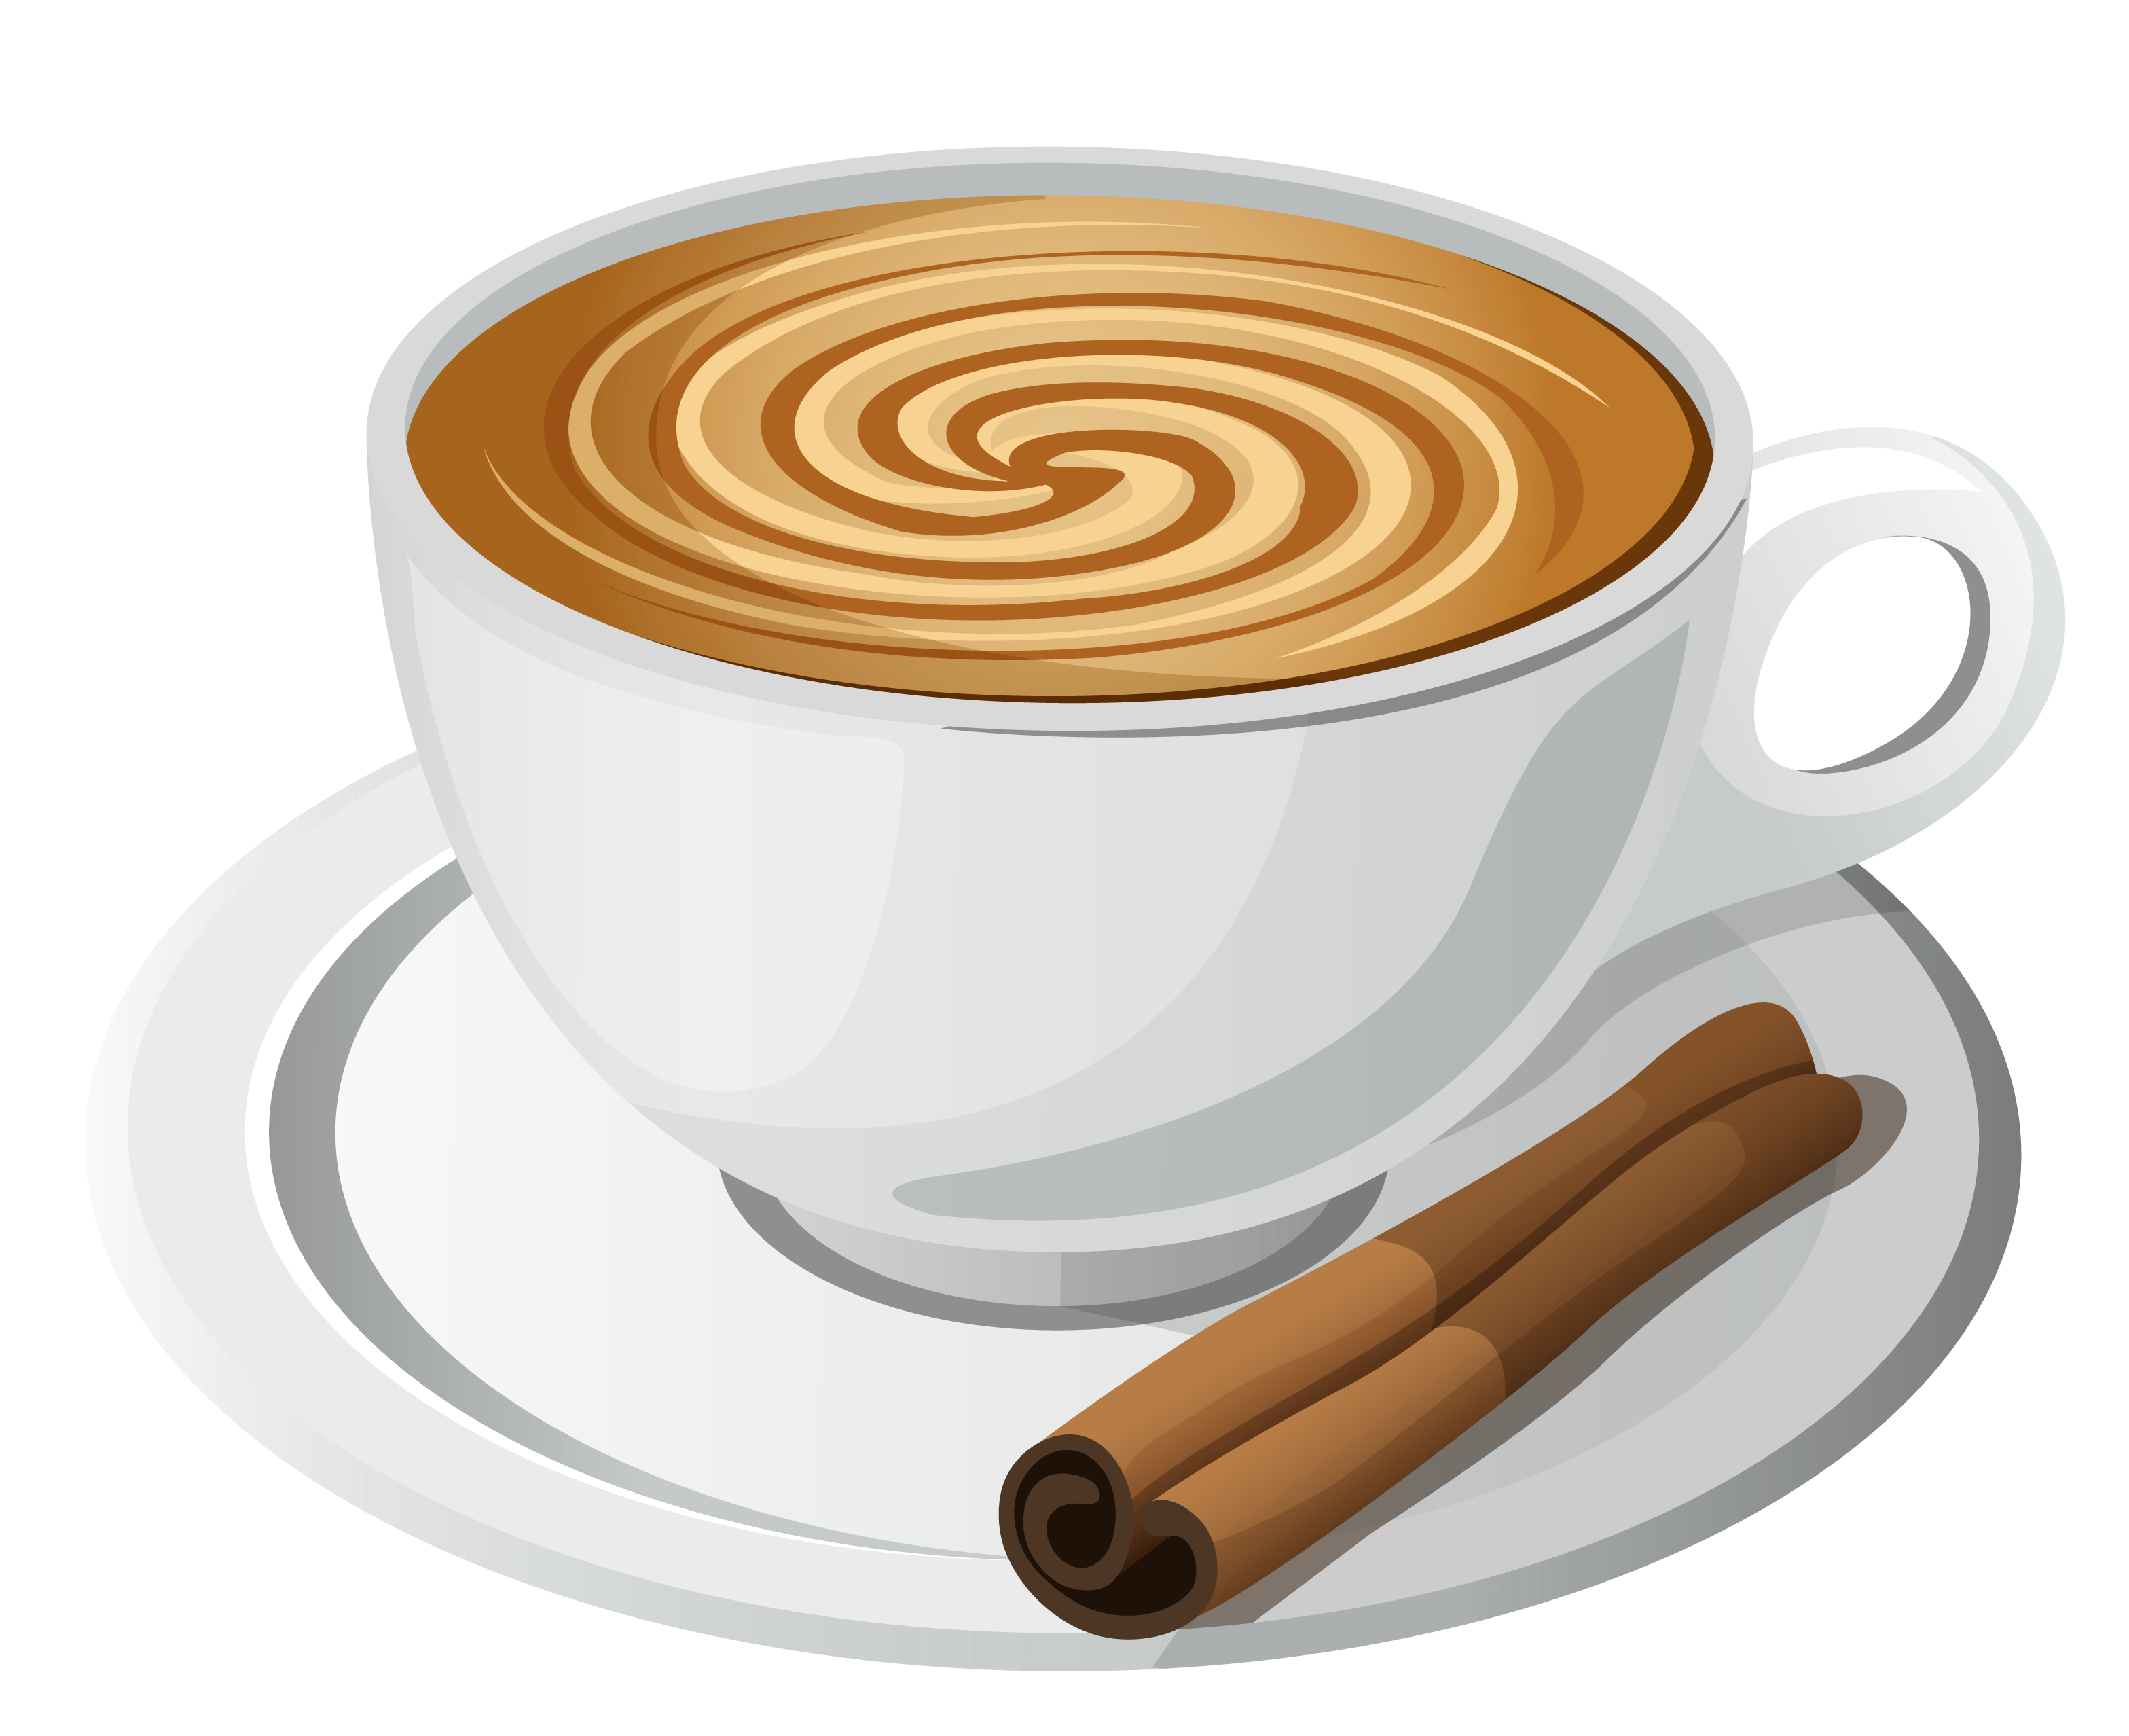 Coffee cup clip art free .